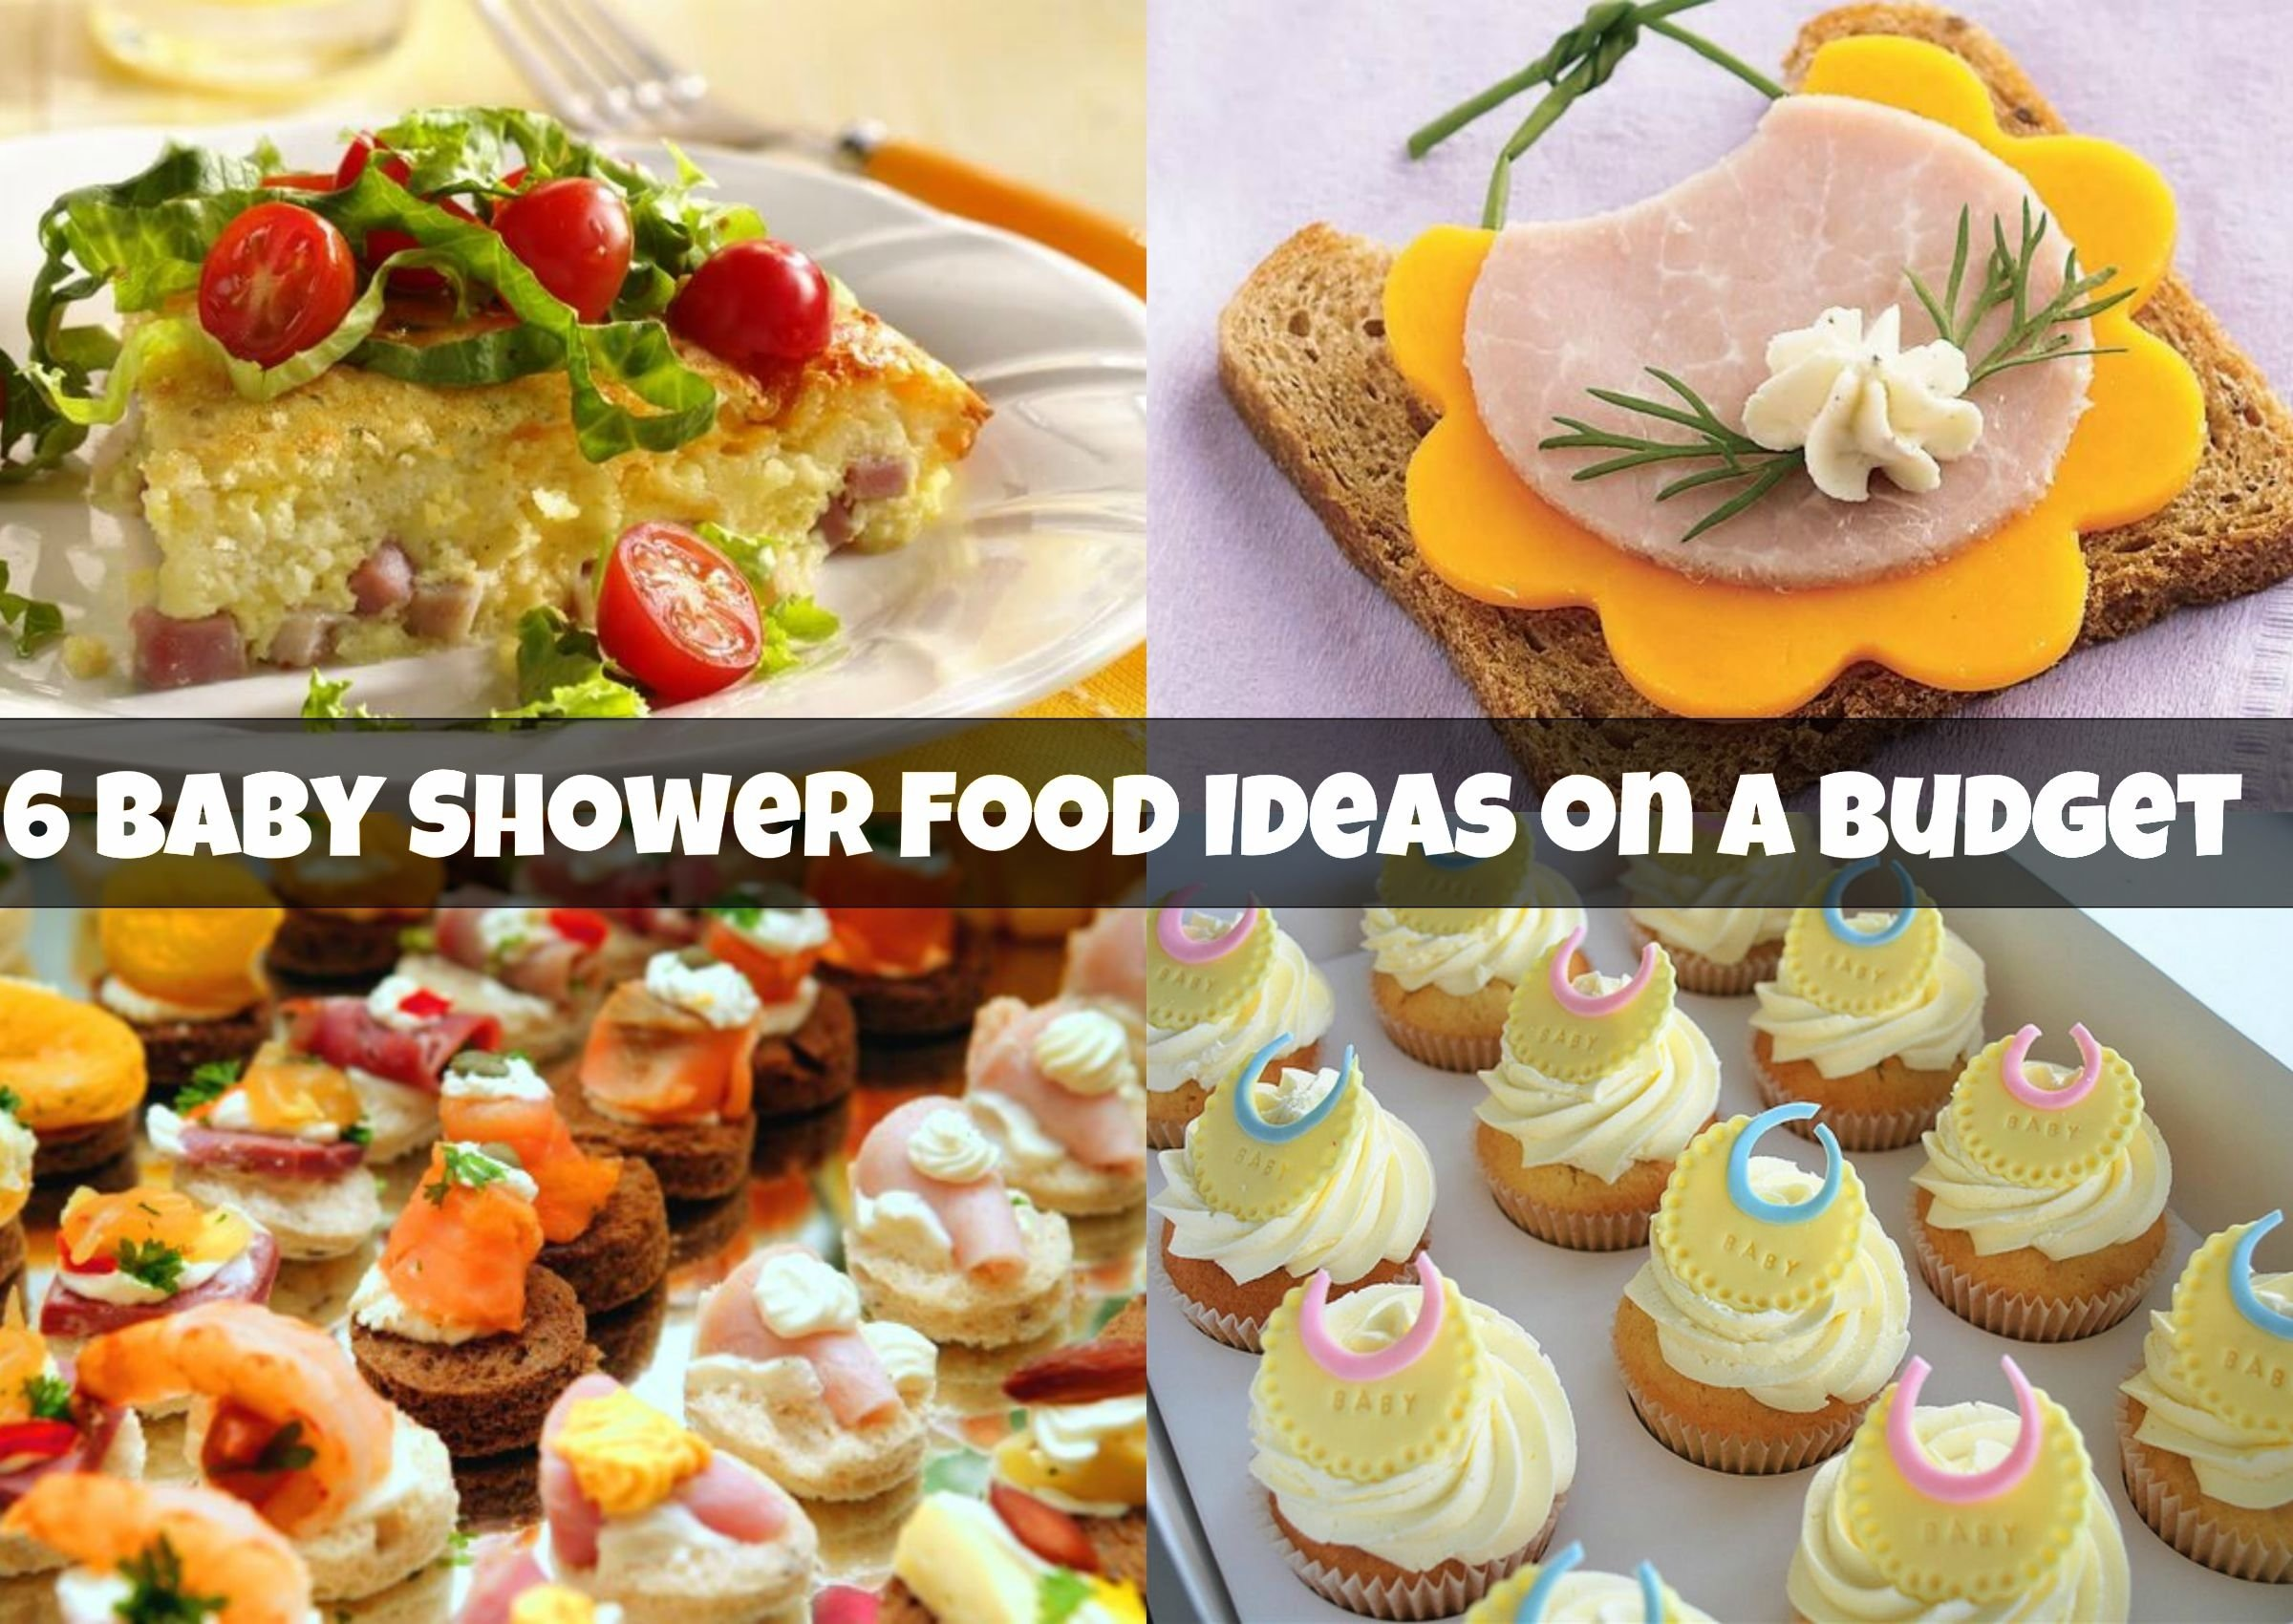 10 Ideal Baby Shower Menu Ideas On A Budget baby shower food ideas on a budget baby shower ideas on a budget 1 2020